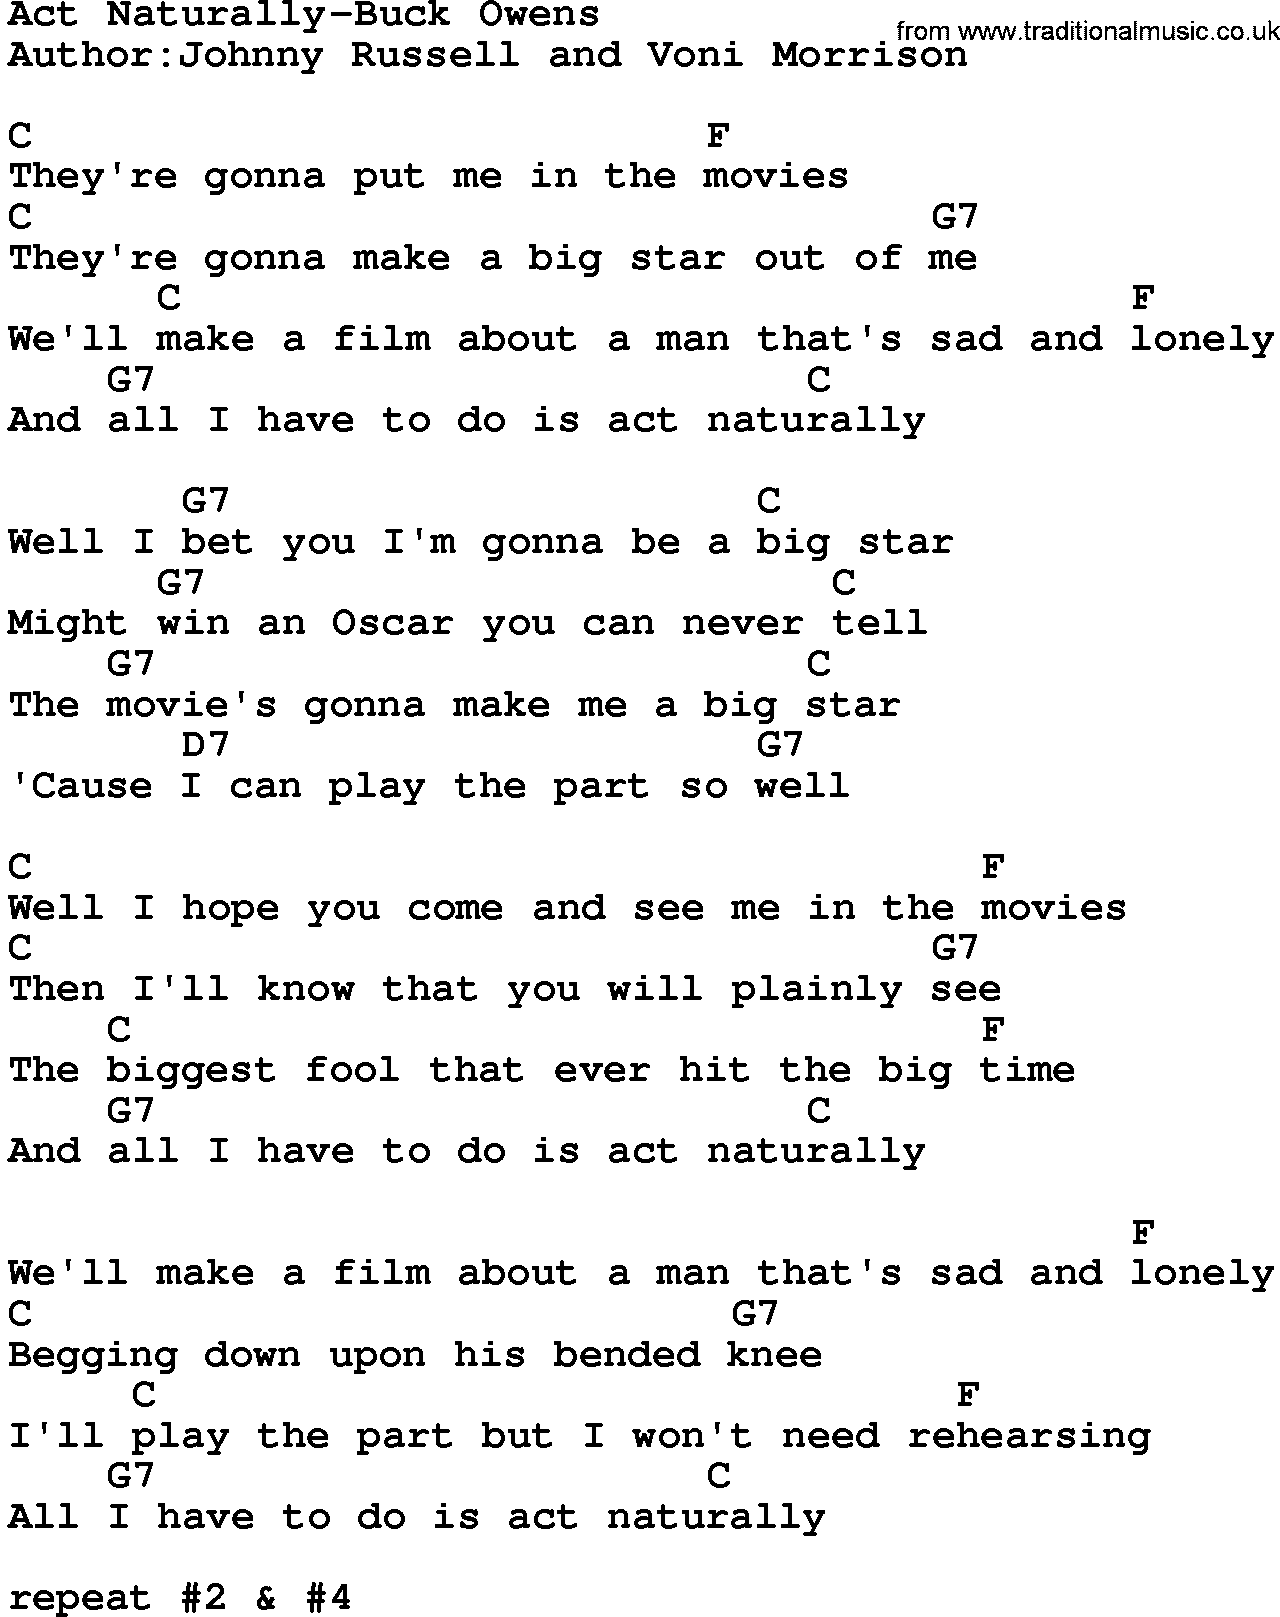 Buck owens song lyrics country music song act naturally buck country musicact naturally buck owens lyrics and chords hexwebz Image collections